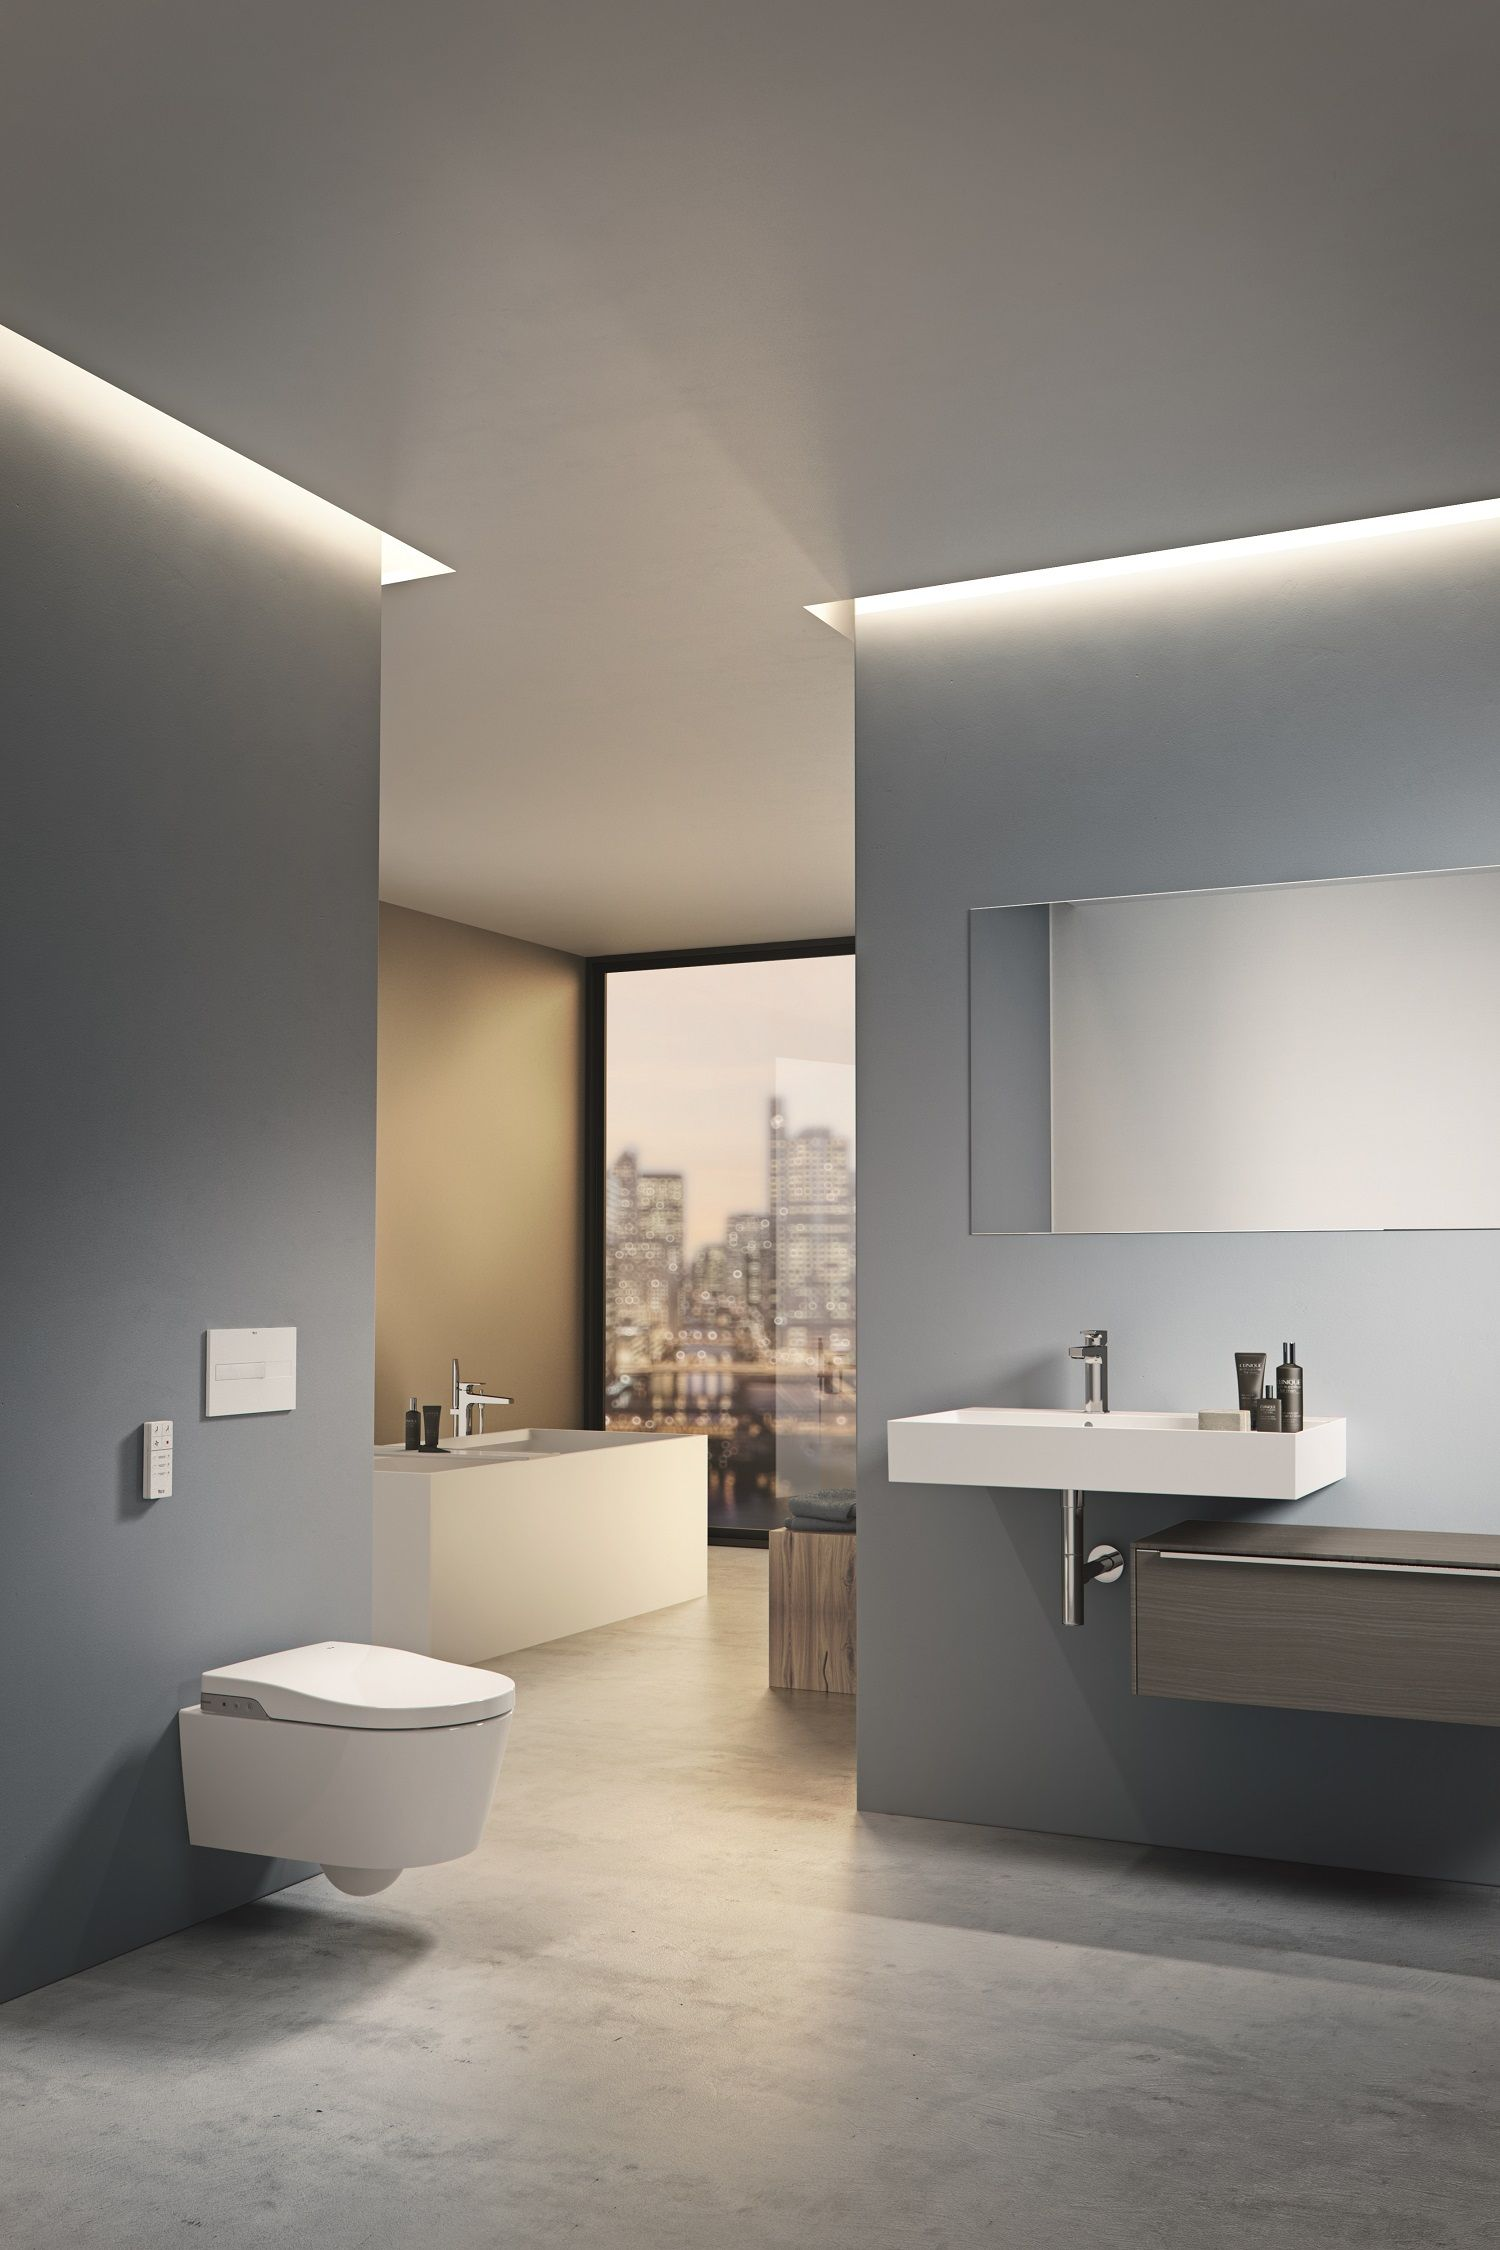 inspira de roca avec wc lavant mural inwash bathroom pinterest more personalization and comfort for the bathroom with the inspira collection by roca including basins made of resistant ceramic material at ish